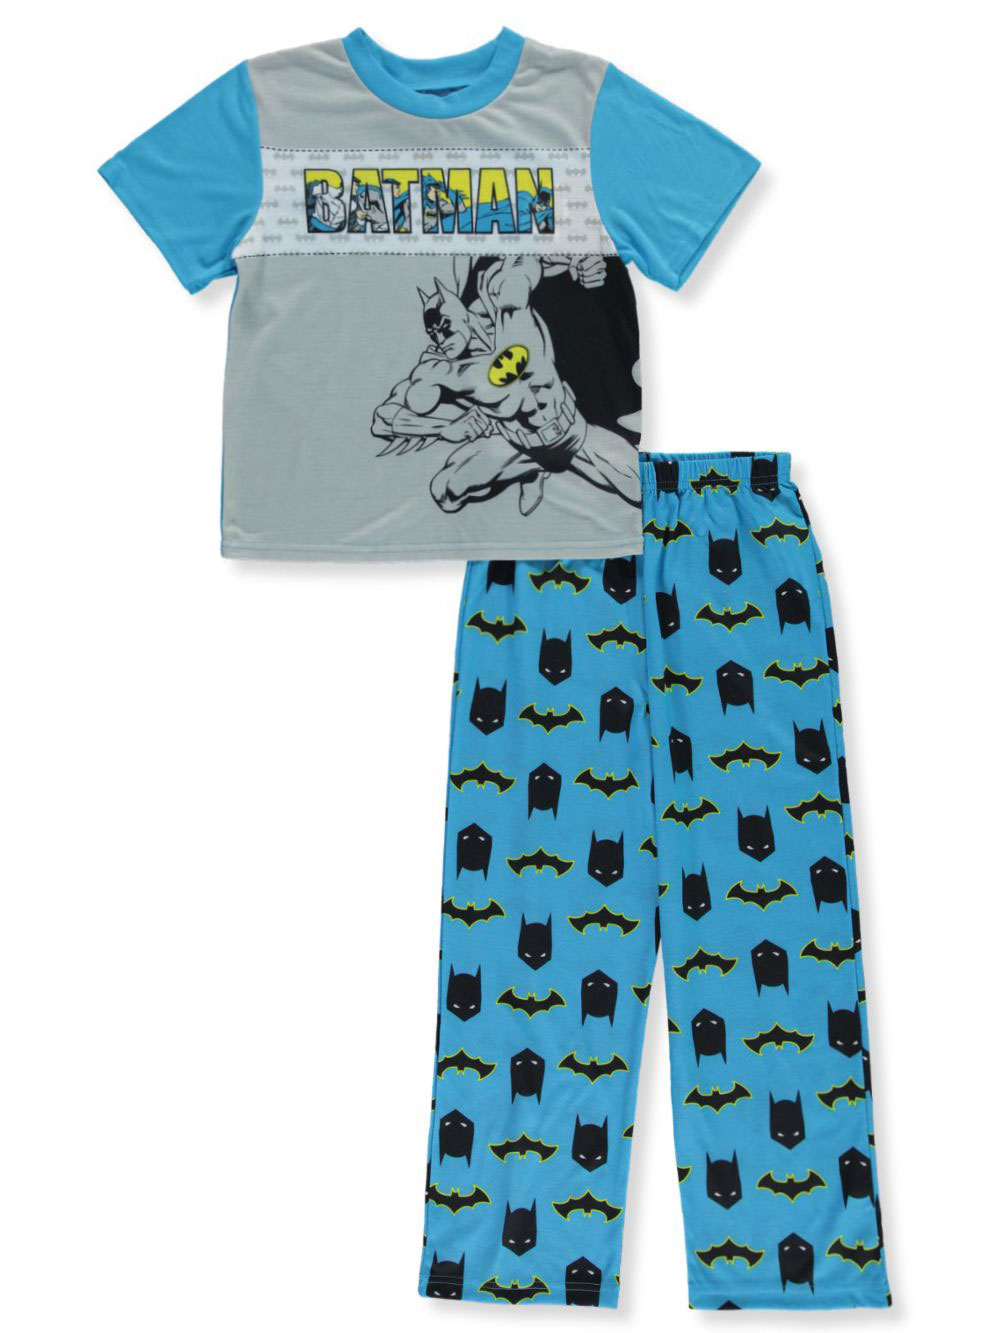 Boys Blue/gray Sleepwear